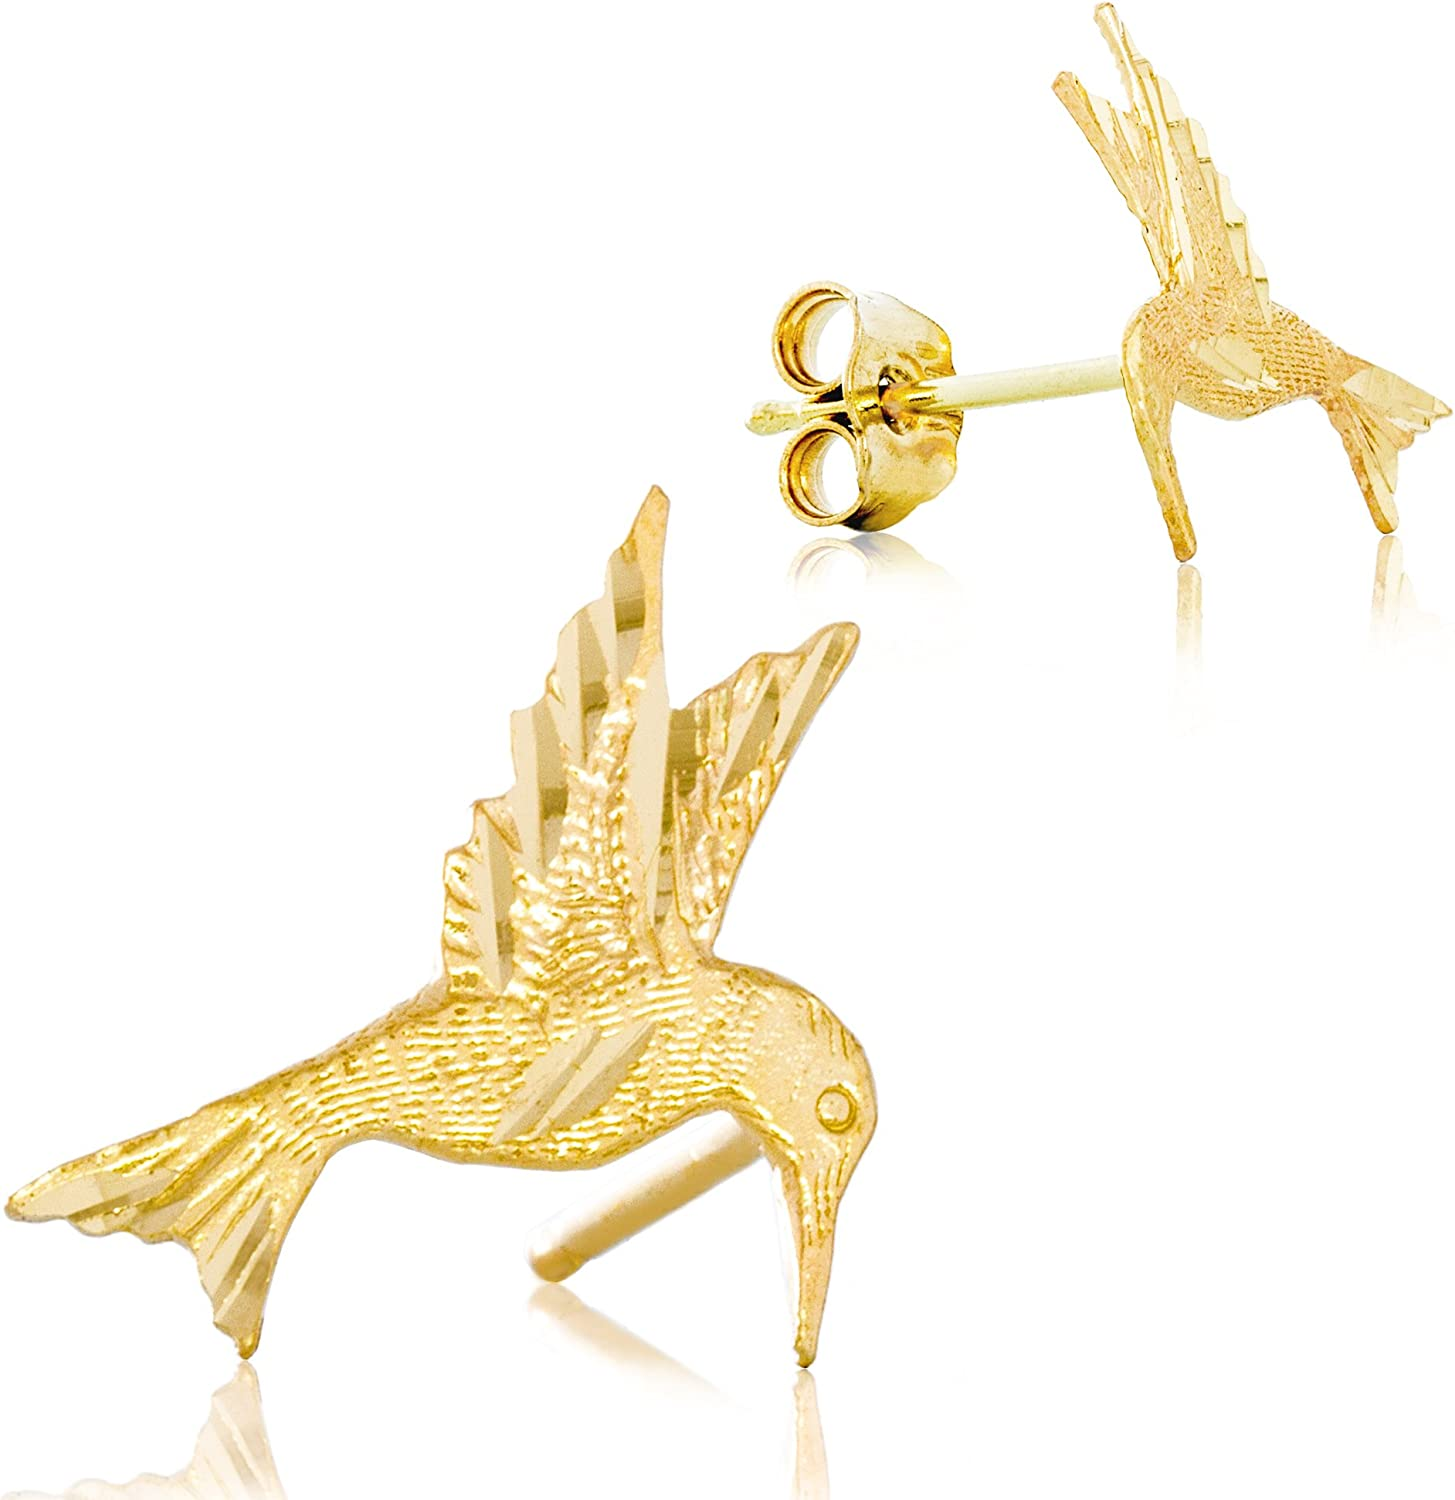 Solid 14K Yellow Gold Hummingbird Earrings | Animal Earrings with Intricate Detailing | 11.7mm x 11.3mm | 0.6g